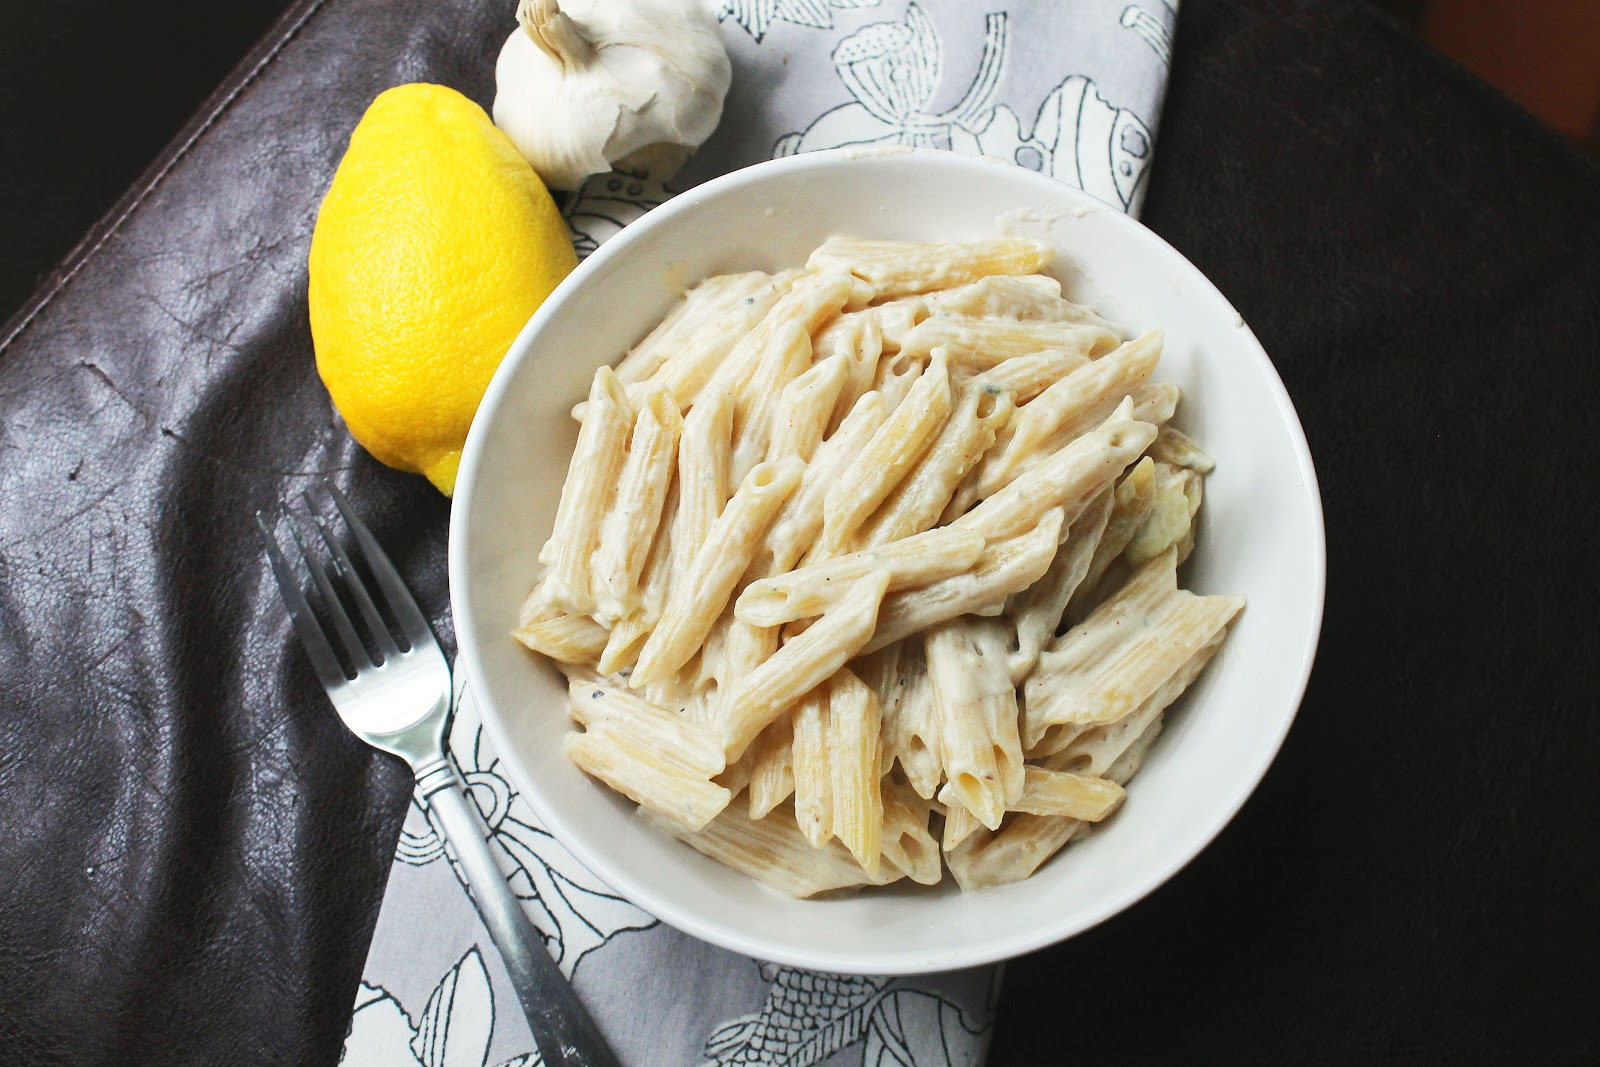 Two Recipes: Baked Penne in Gorgonzola Cream Sauce